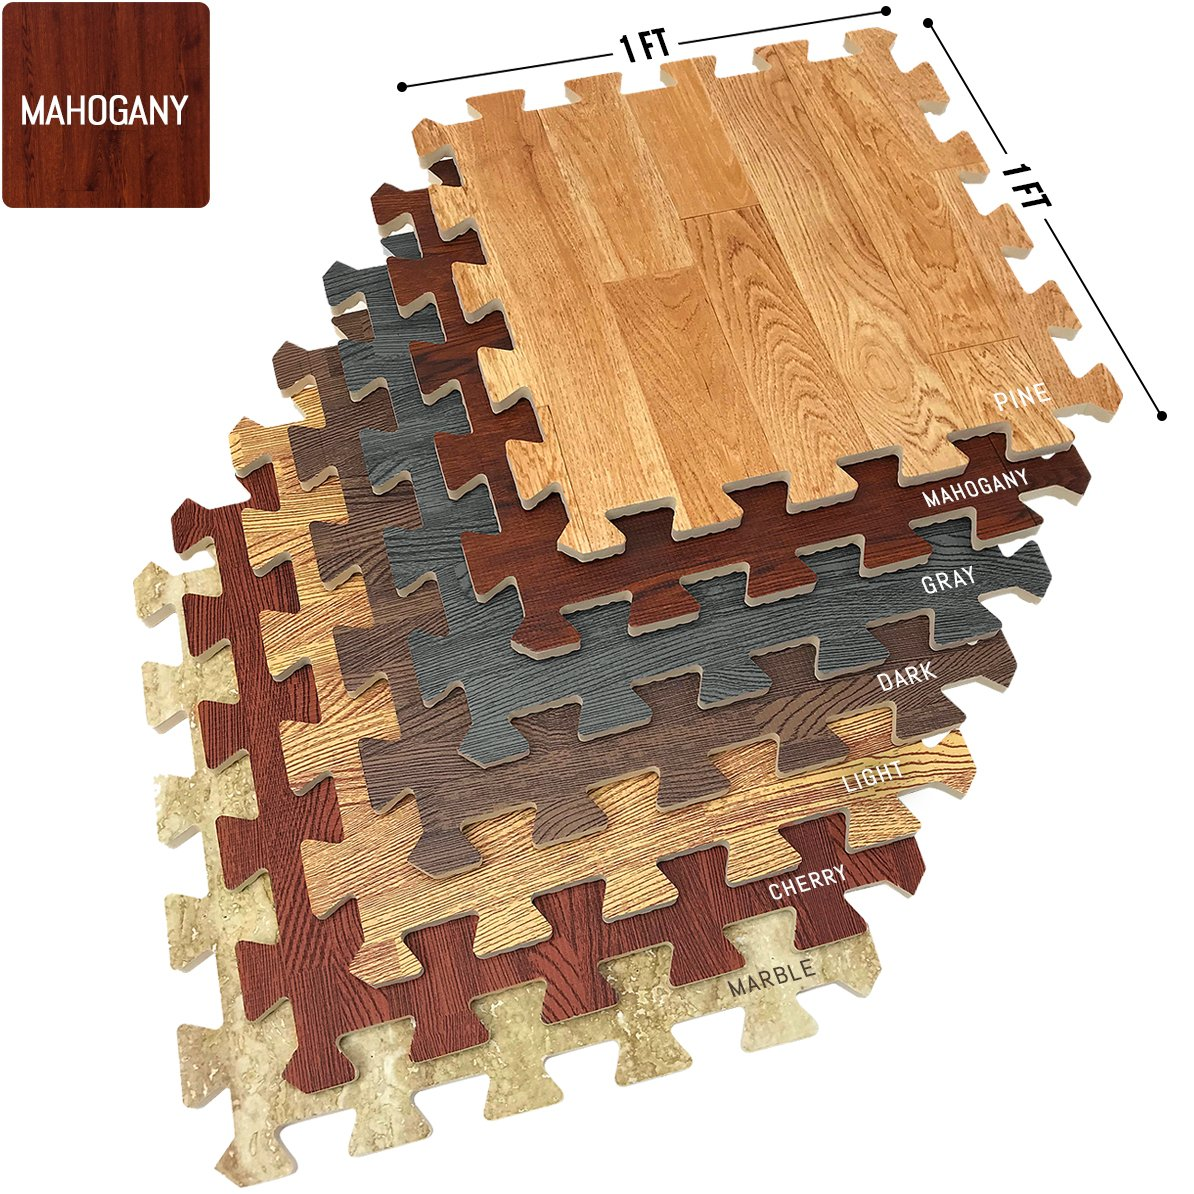 Sorbus Wood Grain Floor Mats Foam Interlocking Mats Each Tile 3/8-Inch Thick Flooring Wood Mat Tiles - Home Office Playroom Basement Trade Show (16 Tiles,16 Sq ft, Mahogany) by Sorbus